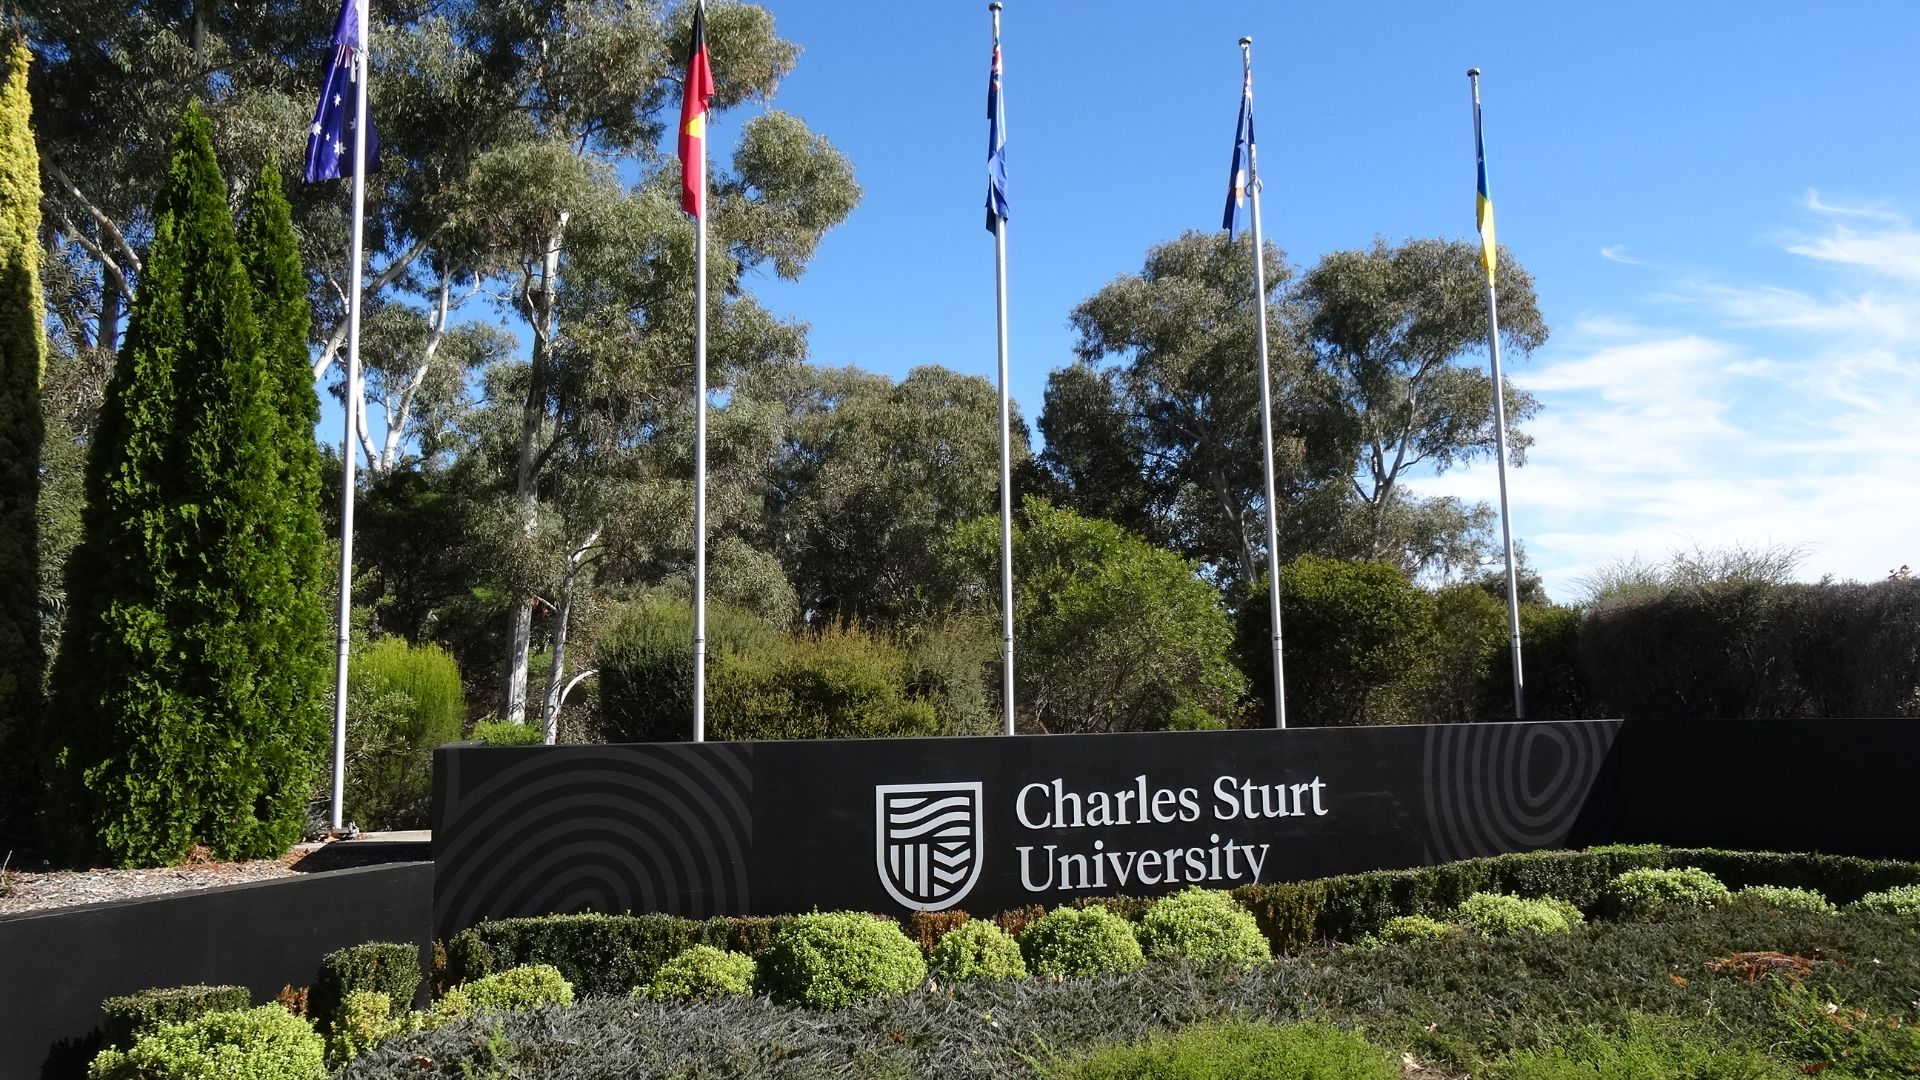 Charles Sturt announces plans for economic and academic sustainability